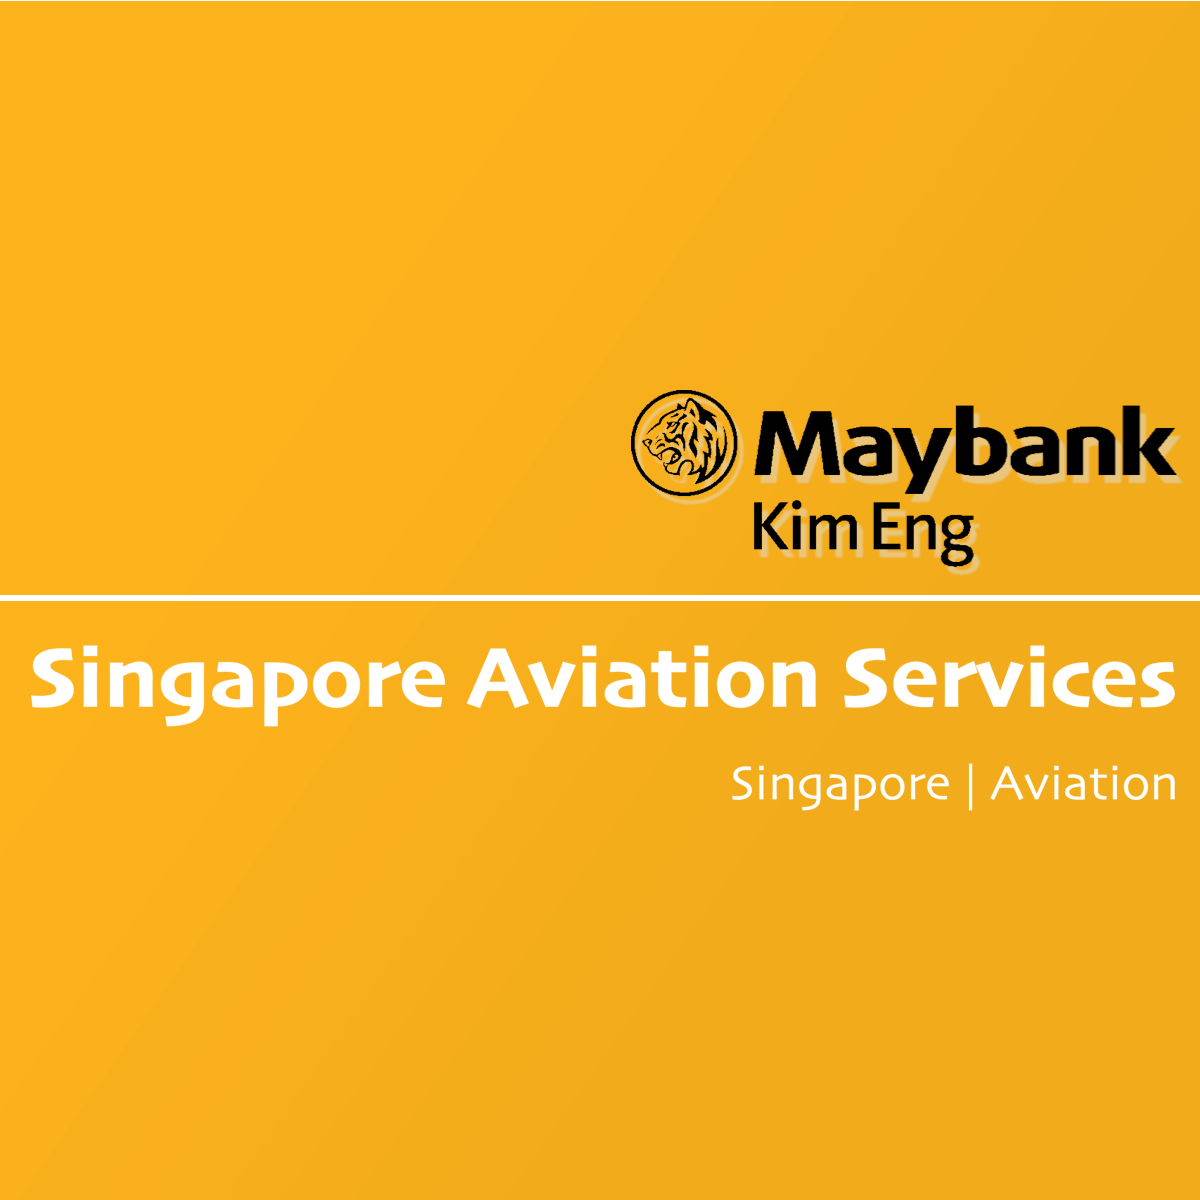 Singapore Aviation Services - Maybank Kim Eng Research | SGinvestors.io